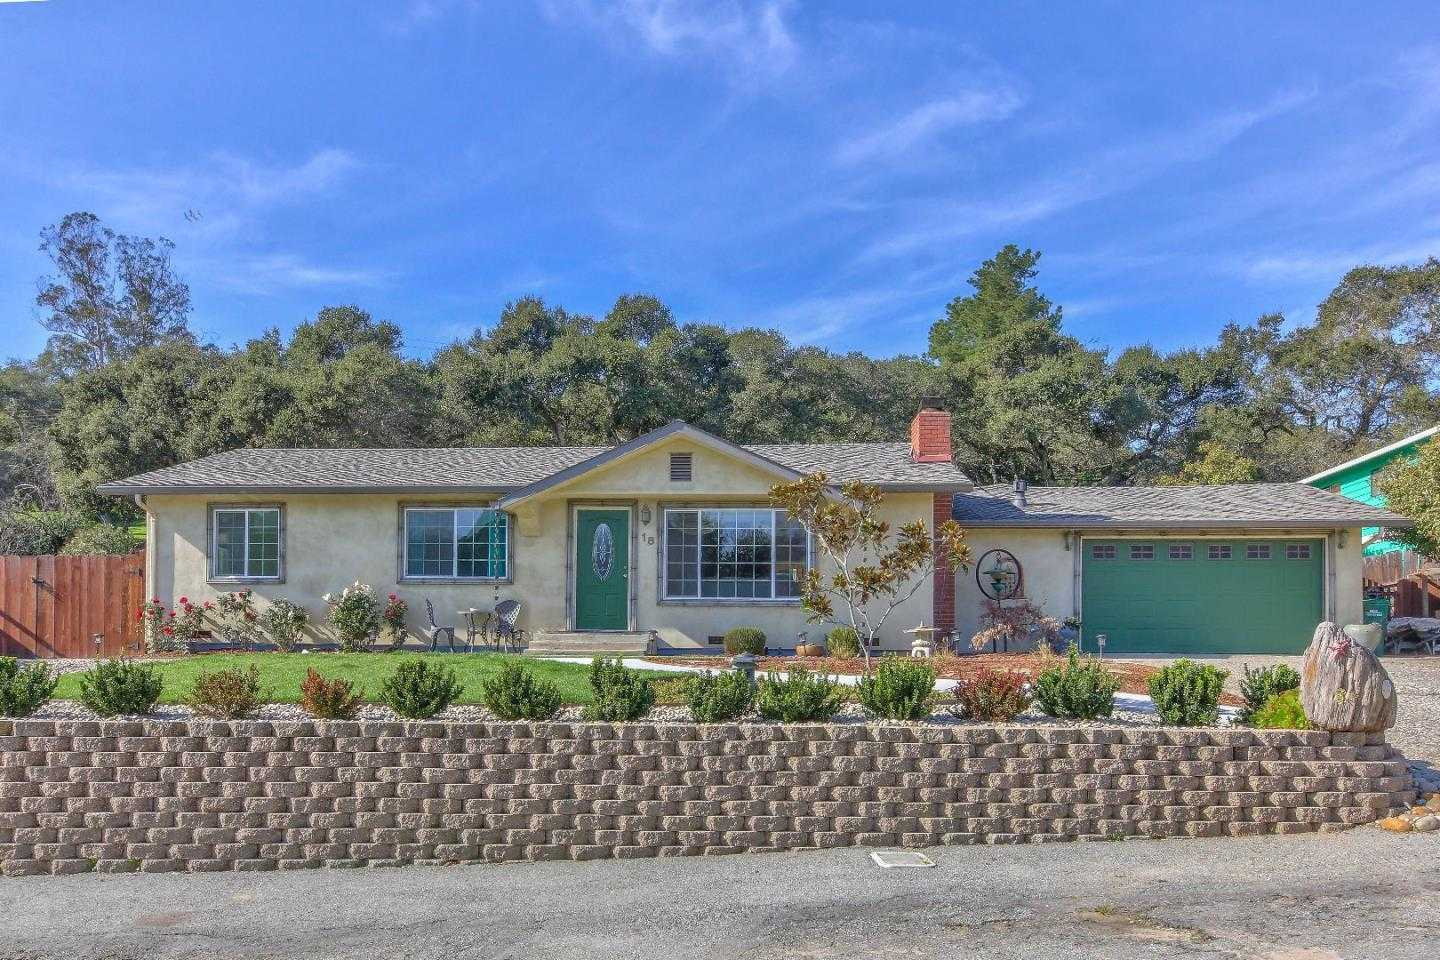 $622,000 - 3Br/2Ba -  for Sale in Salinas